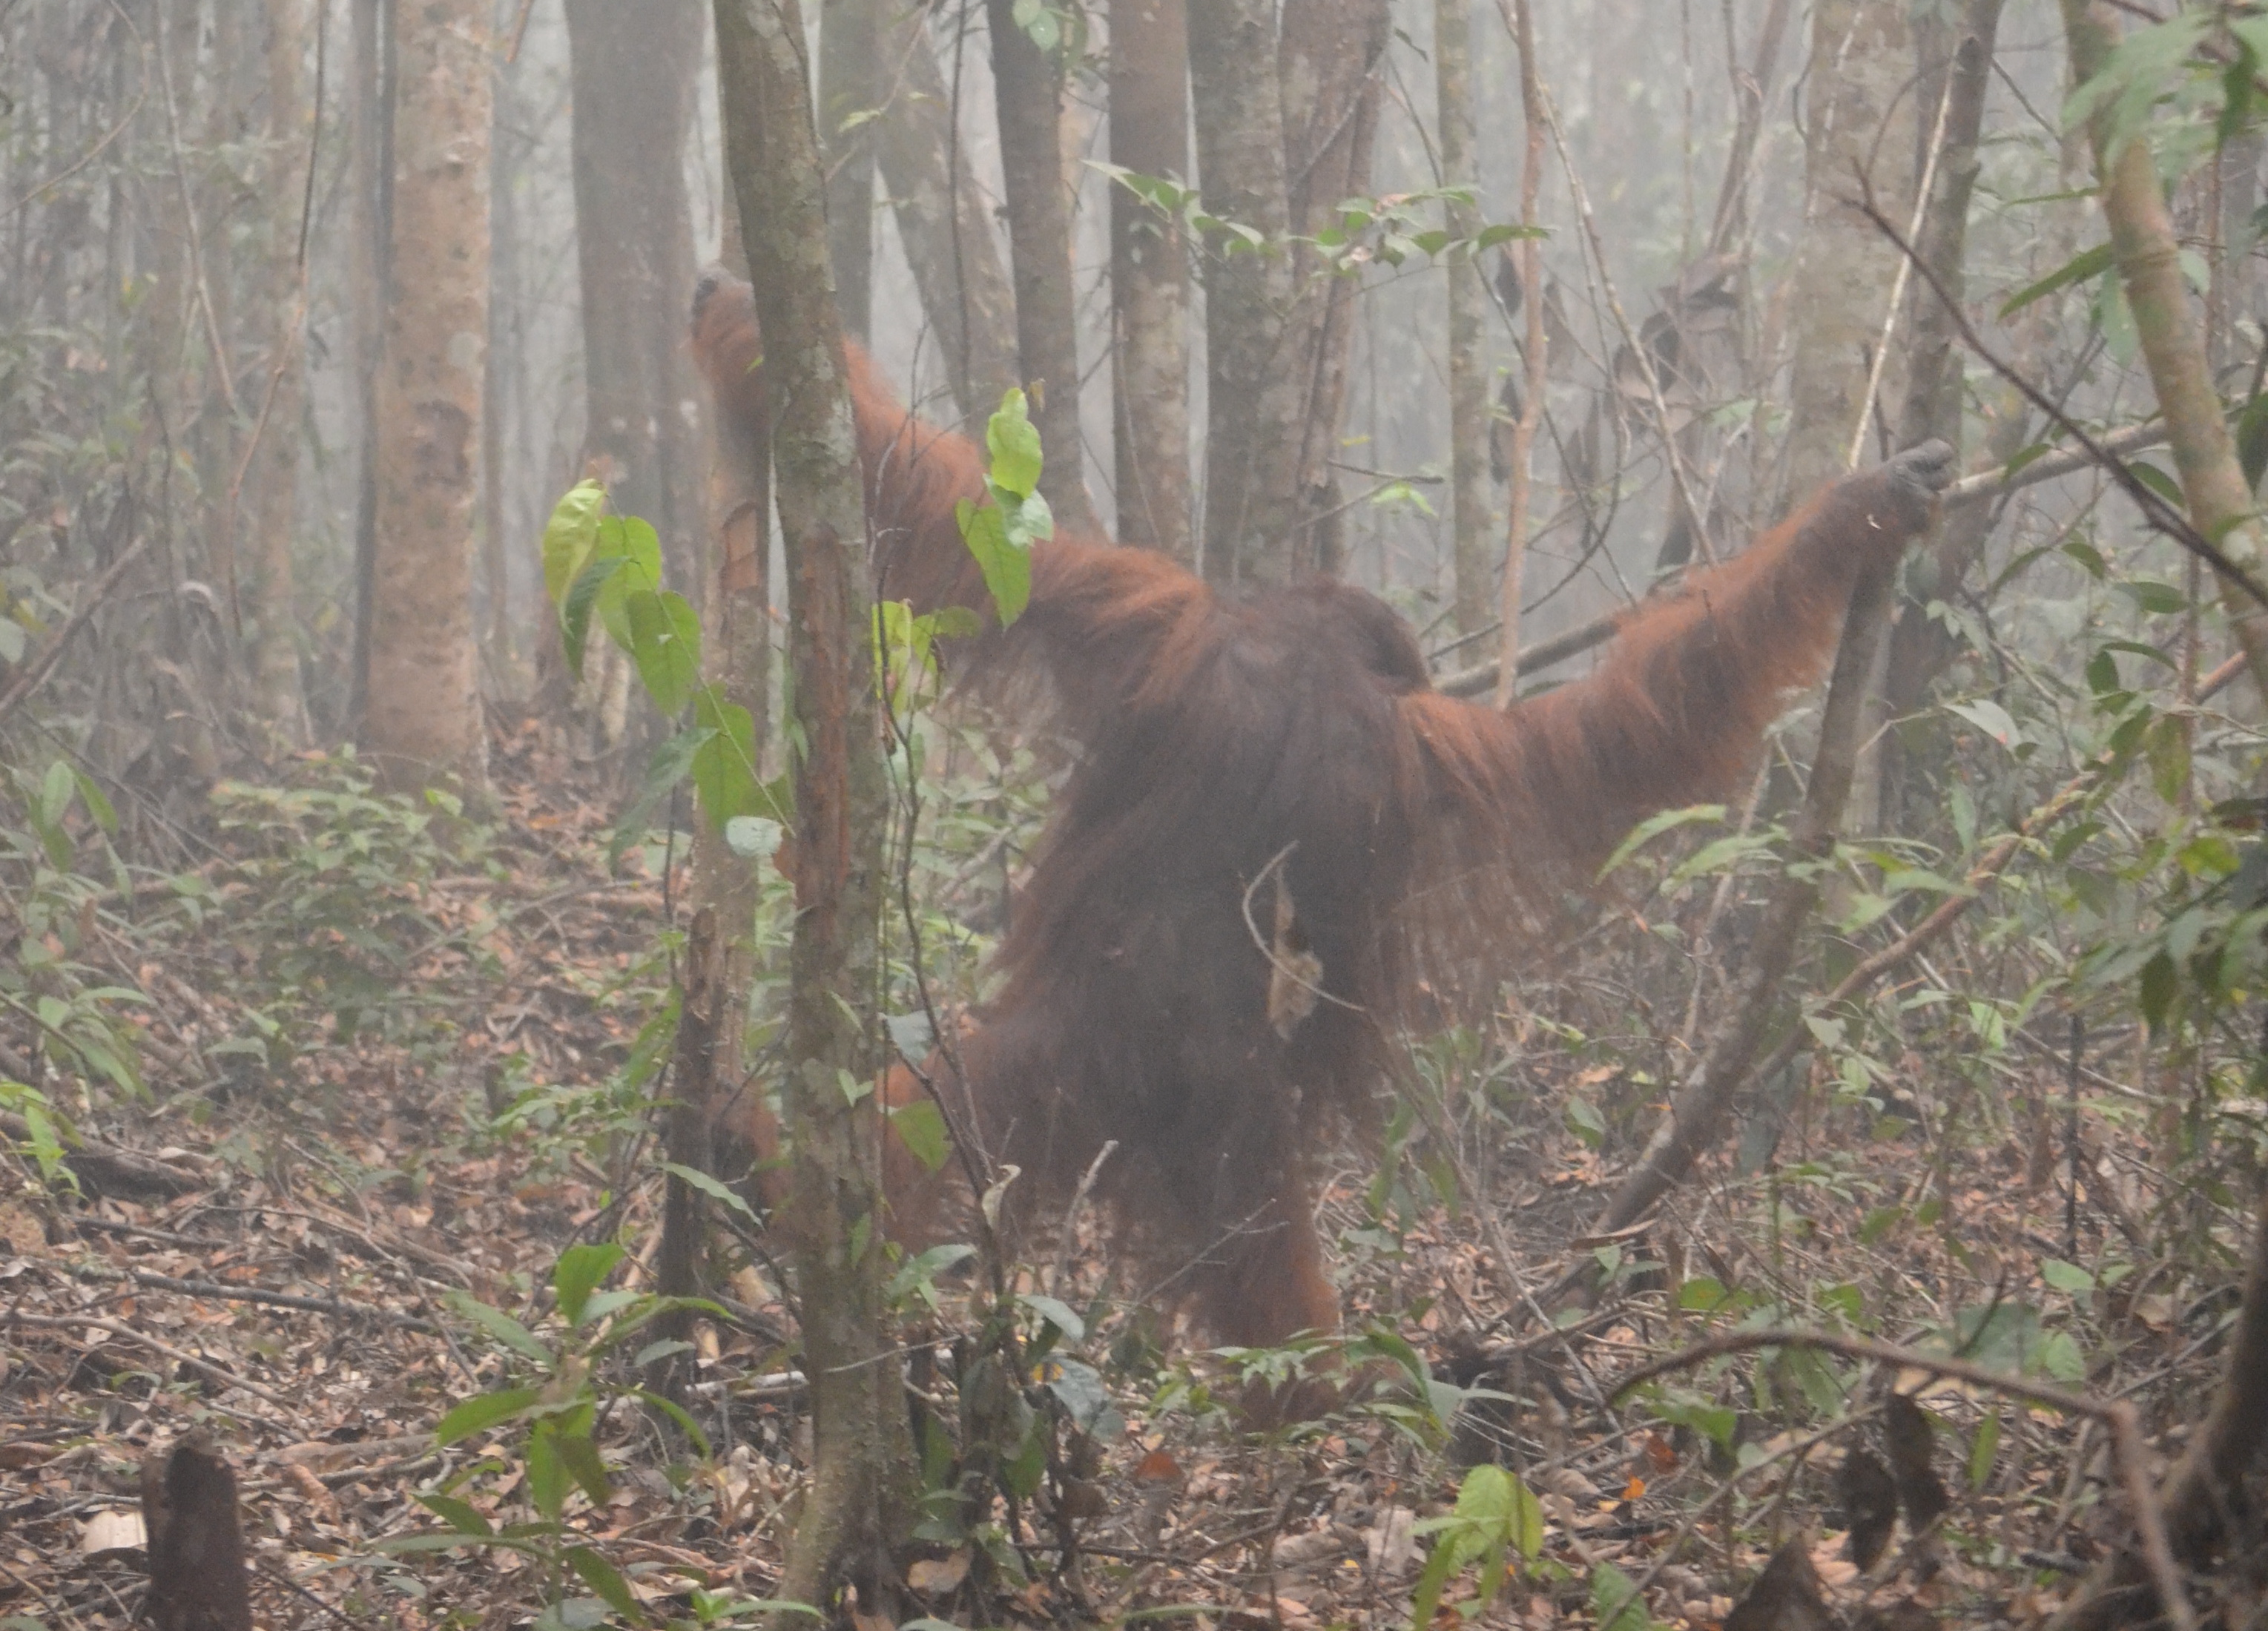 For wild animals like orangutans, an already critically endangered species, avoiding wildfire smoke during fire season is nearly impossible, and a new study found that smoke is just as harmful to orangutans as it is to humans.